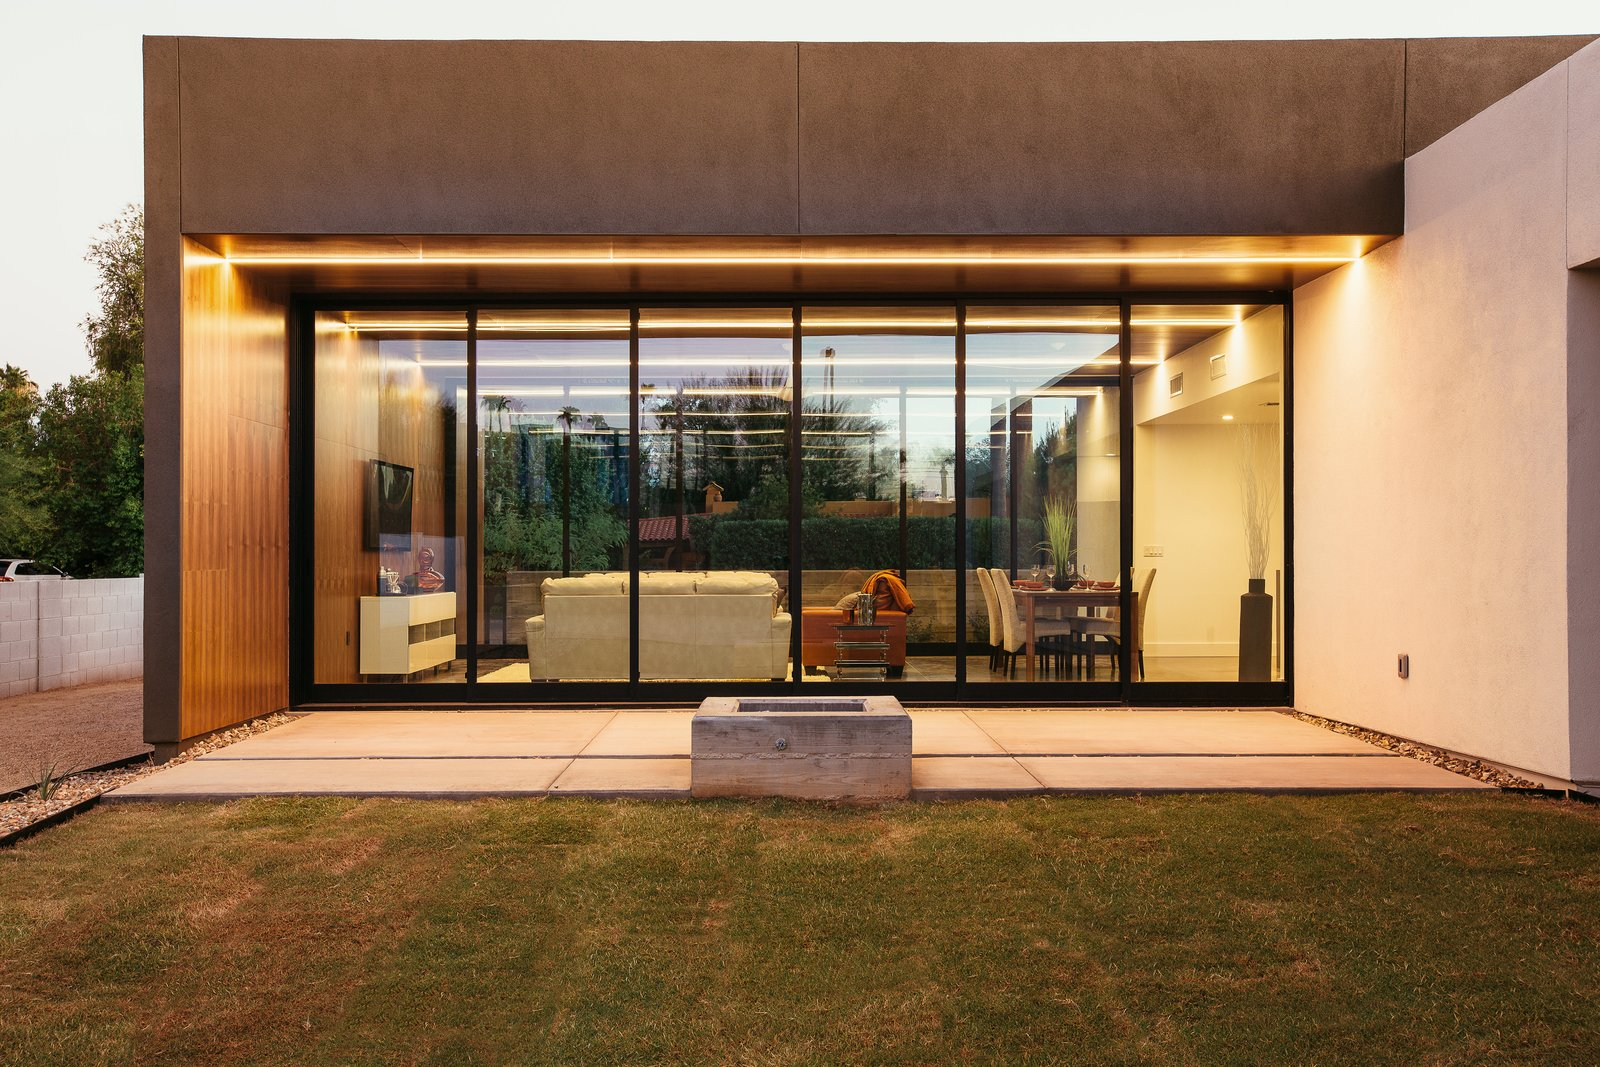 #modern #minimal #exterior #lighting #phoenix #arizona Tagged: Trees, Concrete Floor, Concrete Patio, Porch, Deck, Ceiling Lighting, Grass, White Cabinet, Engineered Quartz Counter, Undermount Sink, Open Shower, Ceramic Tile Wall, Back Yard, and Outdoor.  Link House by The Ranch Mine